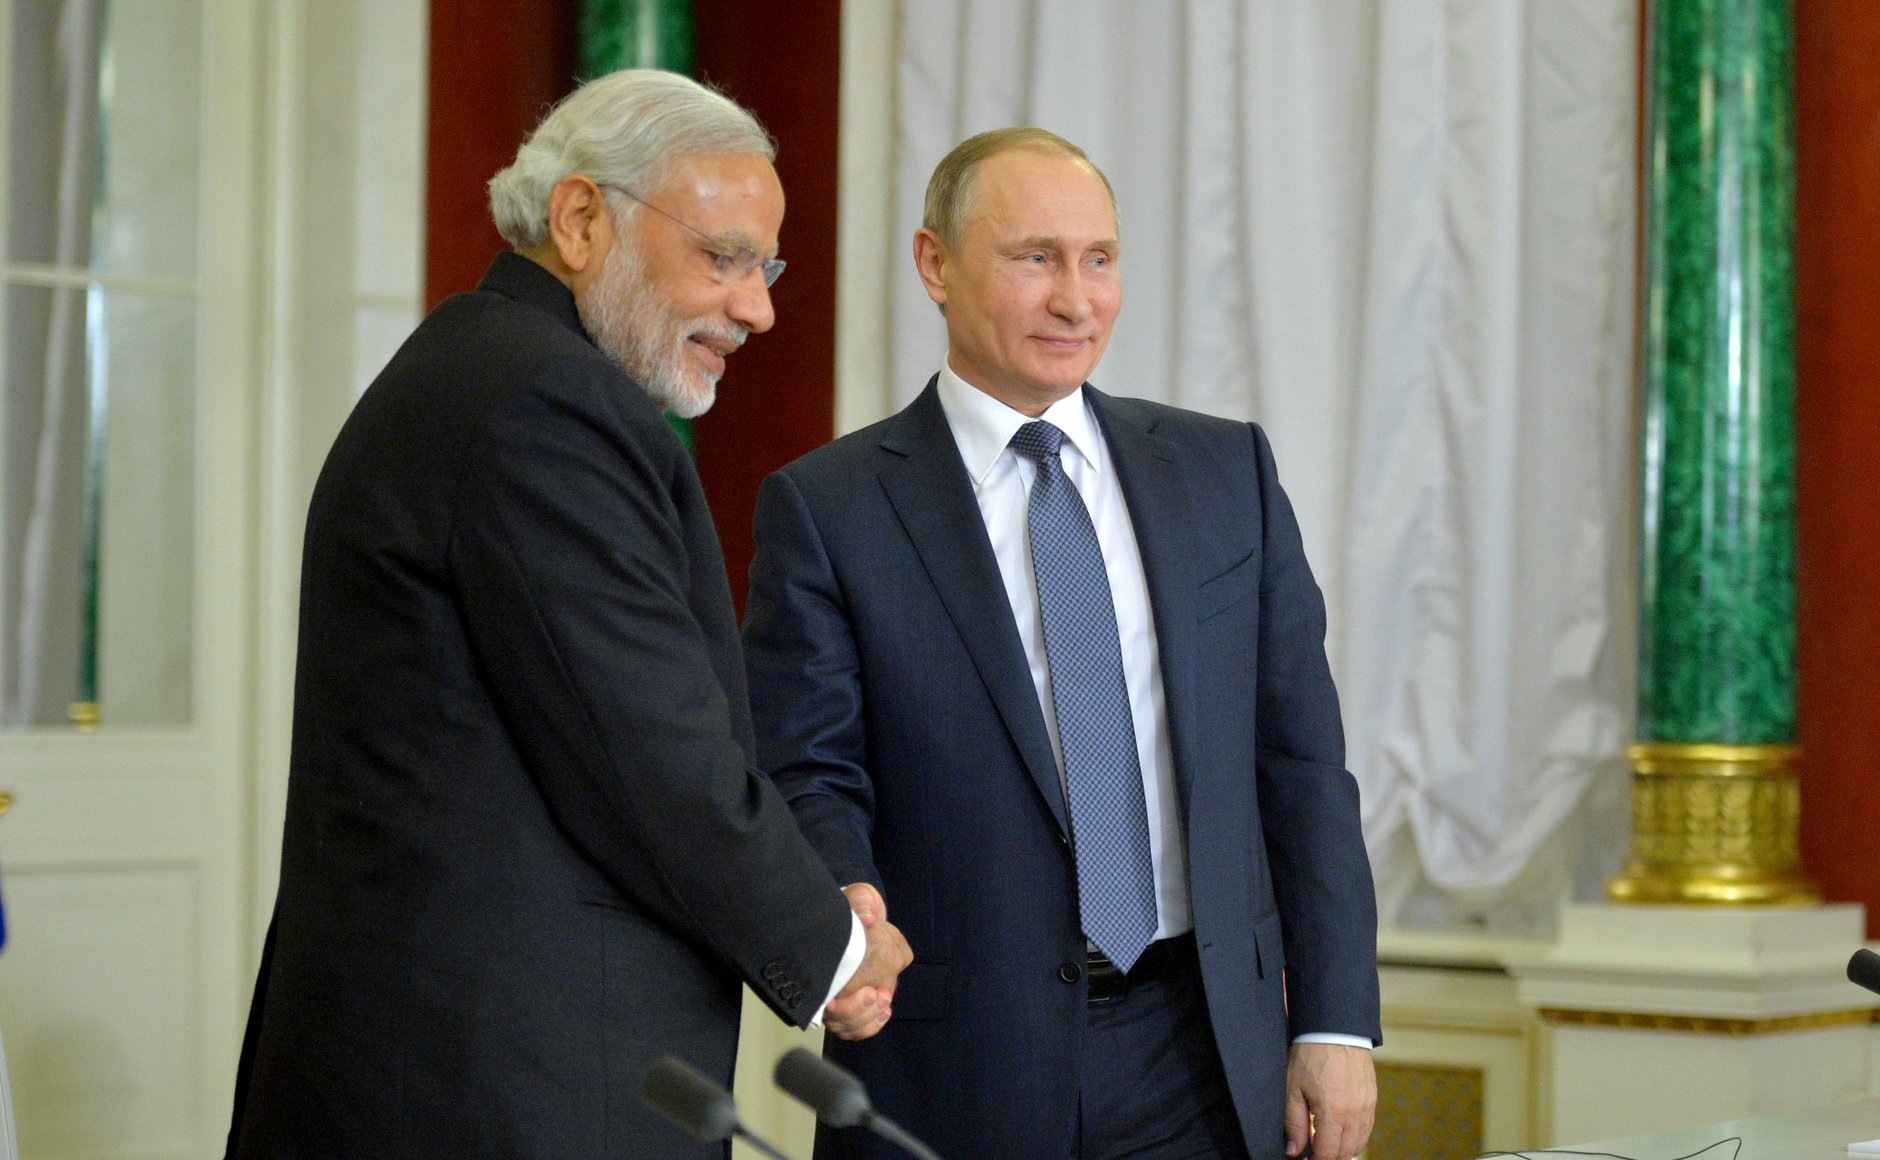 The India-Russia relationship is the one global partnership with very few differences.